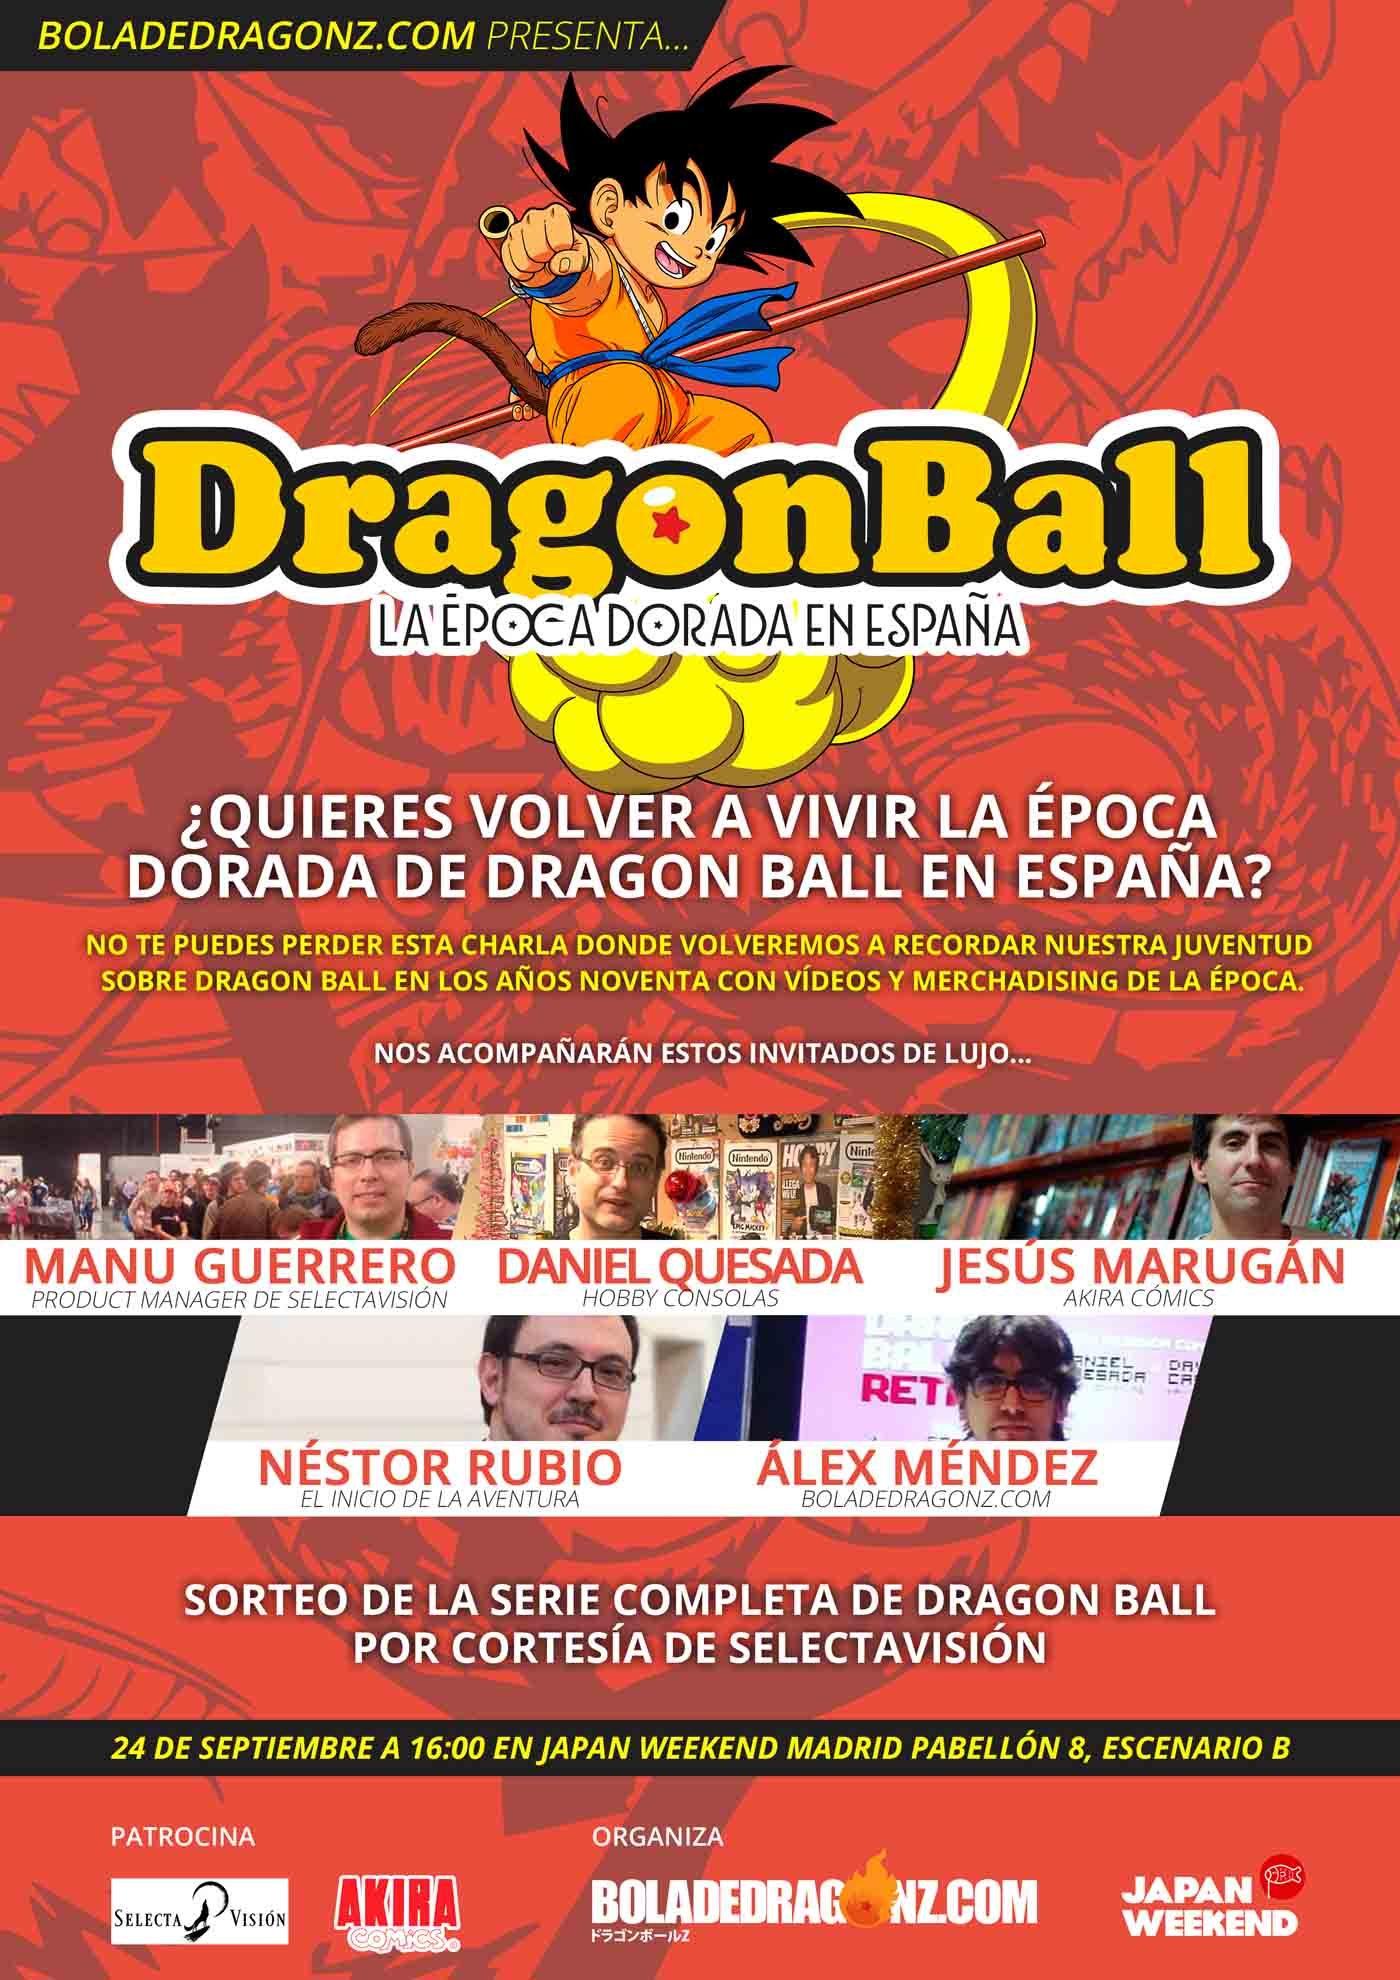 Dragon Ball Época dorada